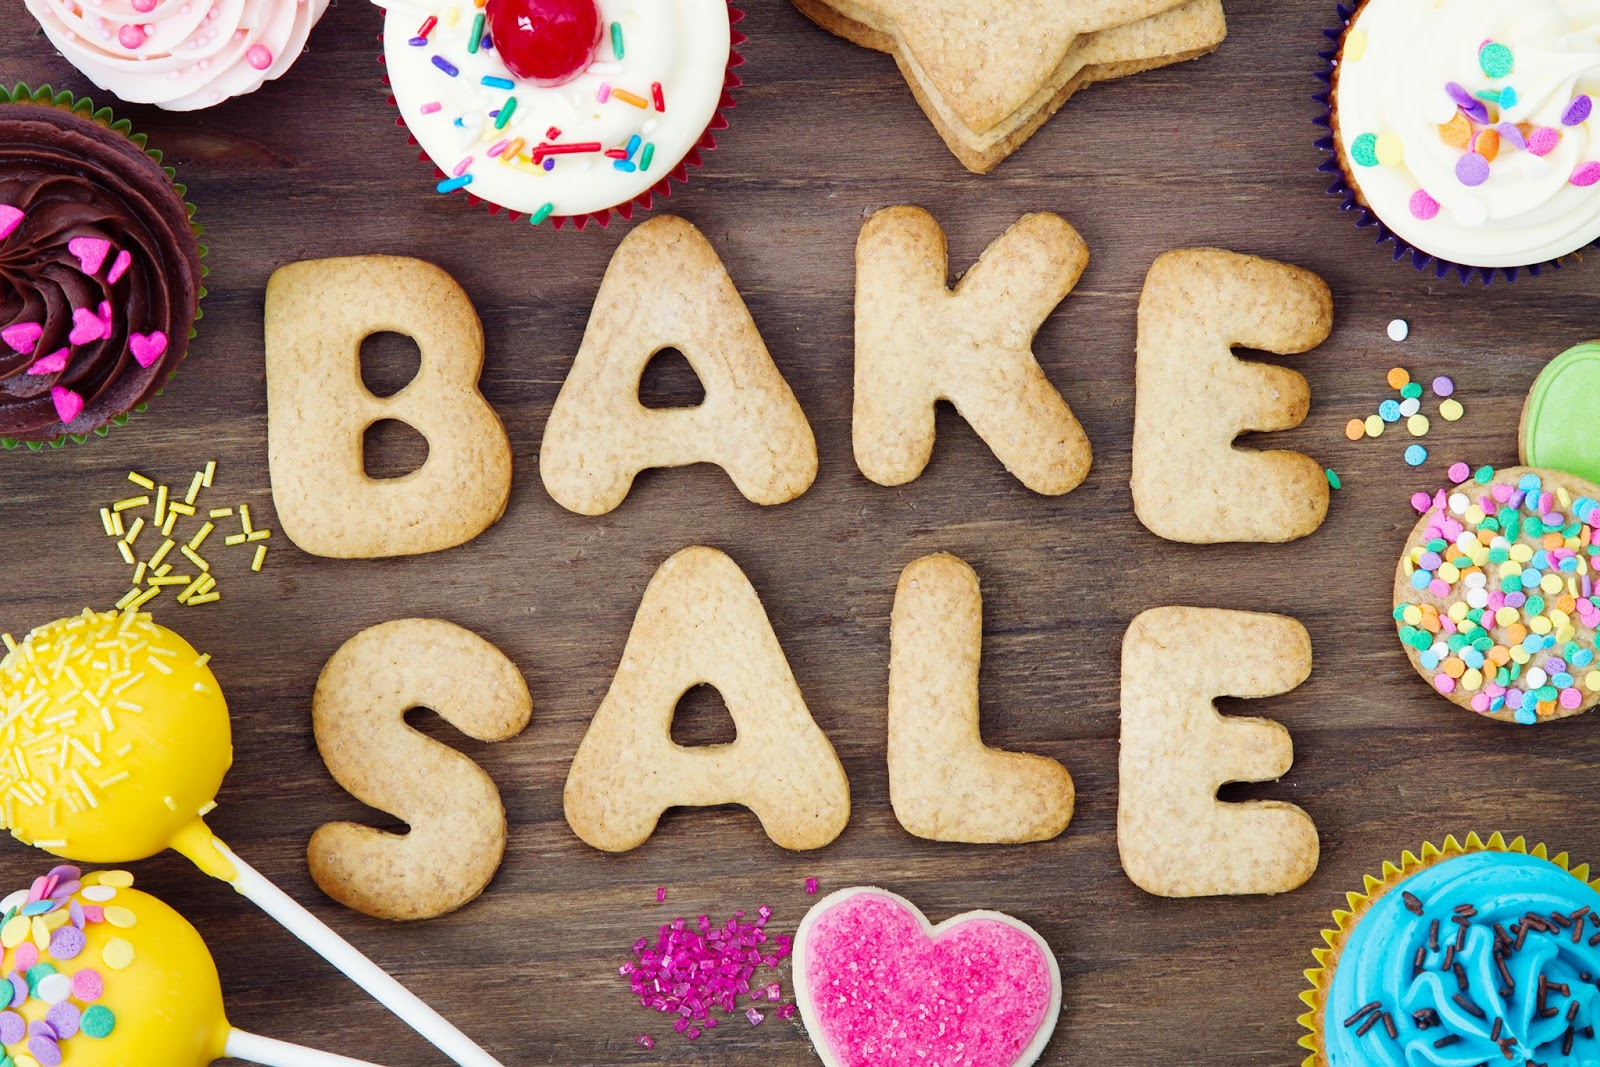 Father Joe's Village Guild - Craft and Bake Sale